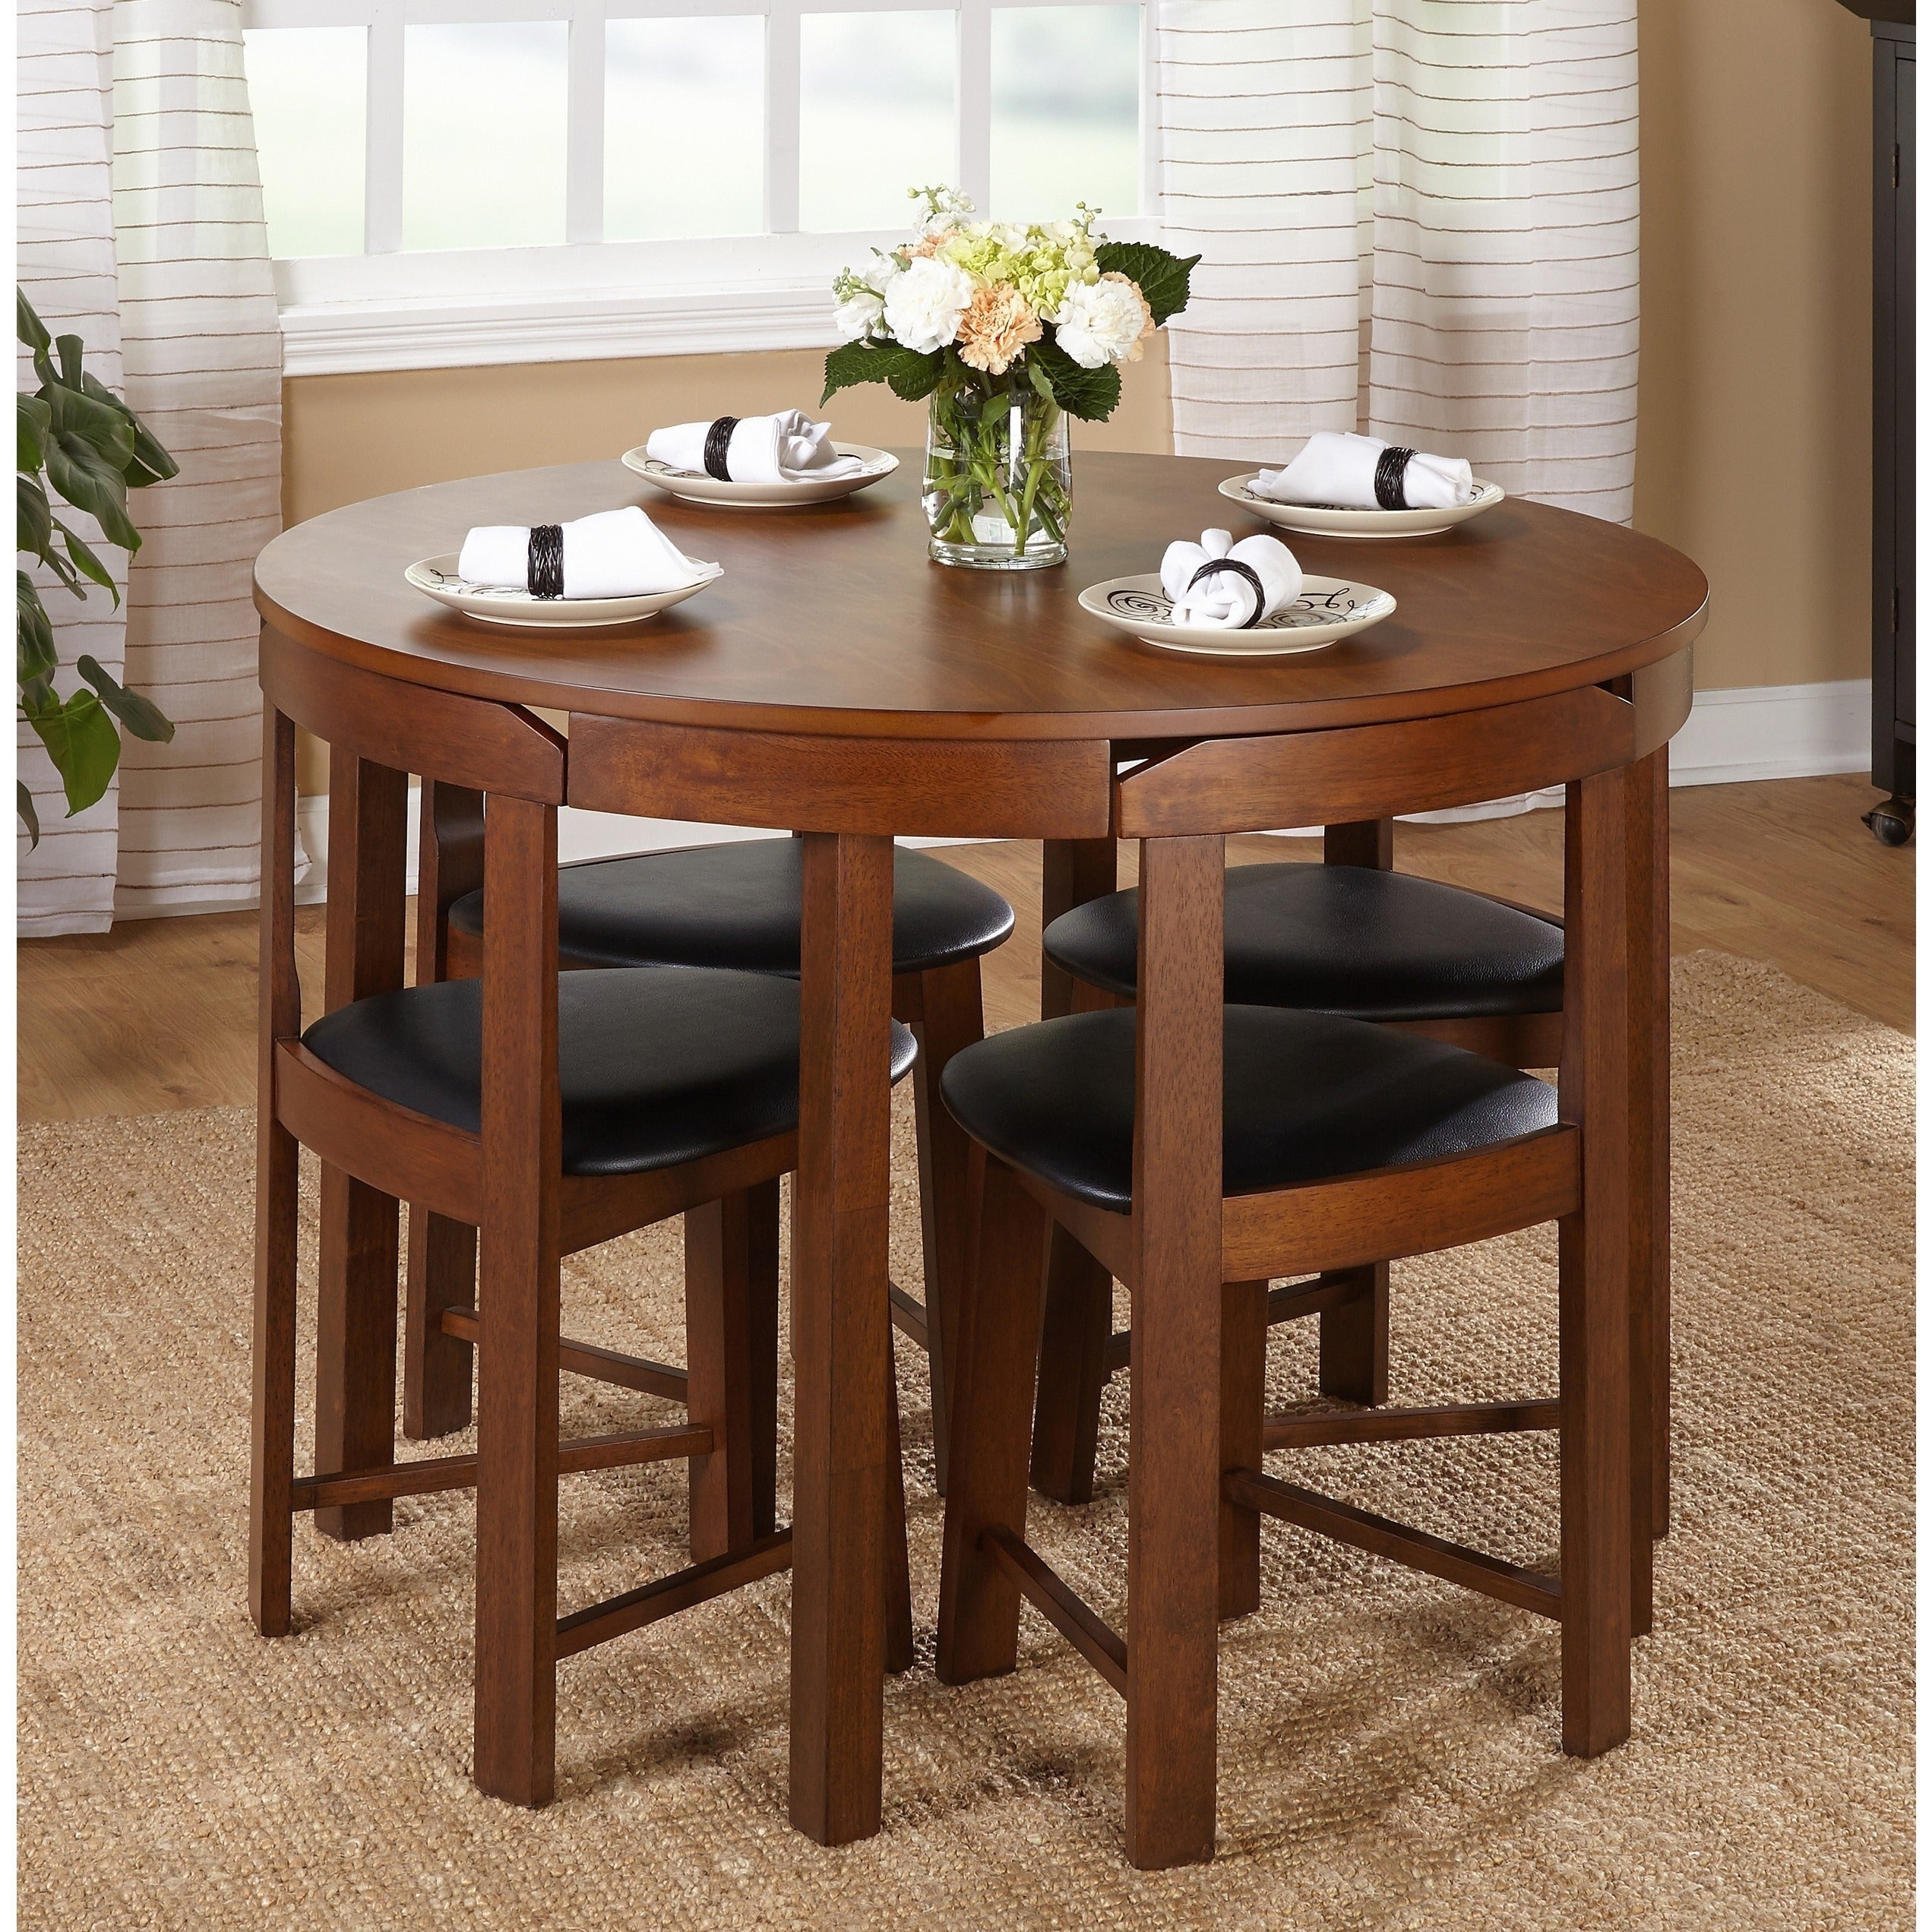 Buy Breakfast Nook Kitchen & Dining Room Sets Online At Overstock For Most Up To Date Cincinnati 3 Piece Dining Sets (View 5 of 20)